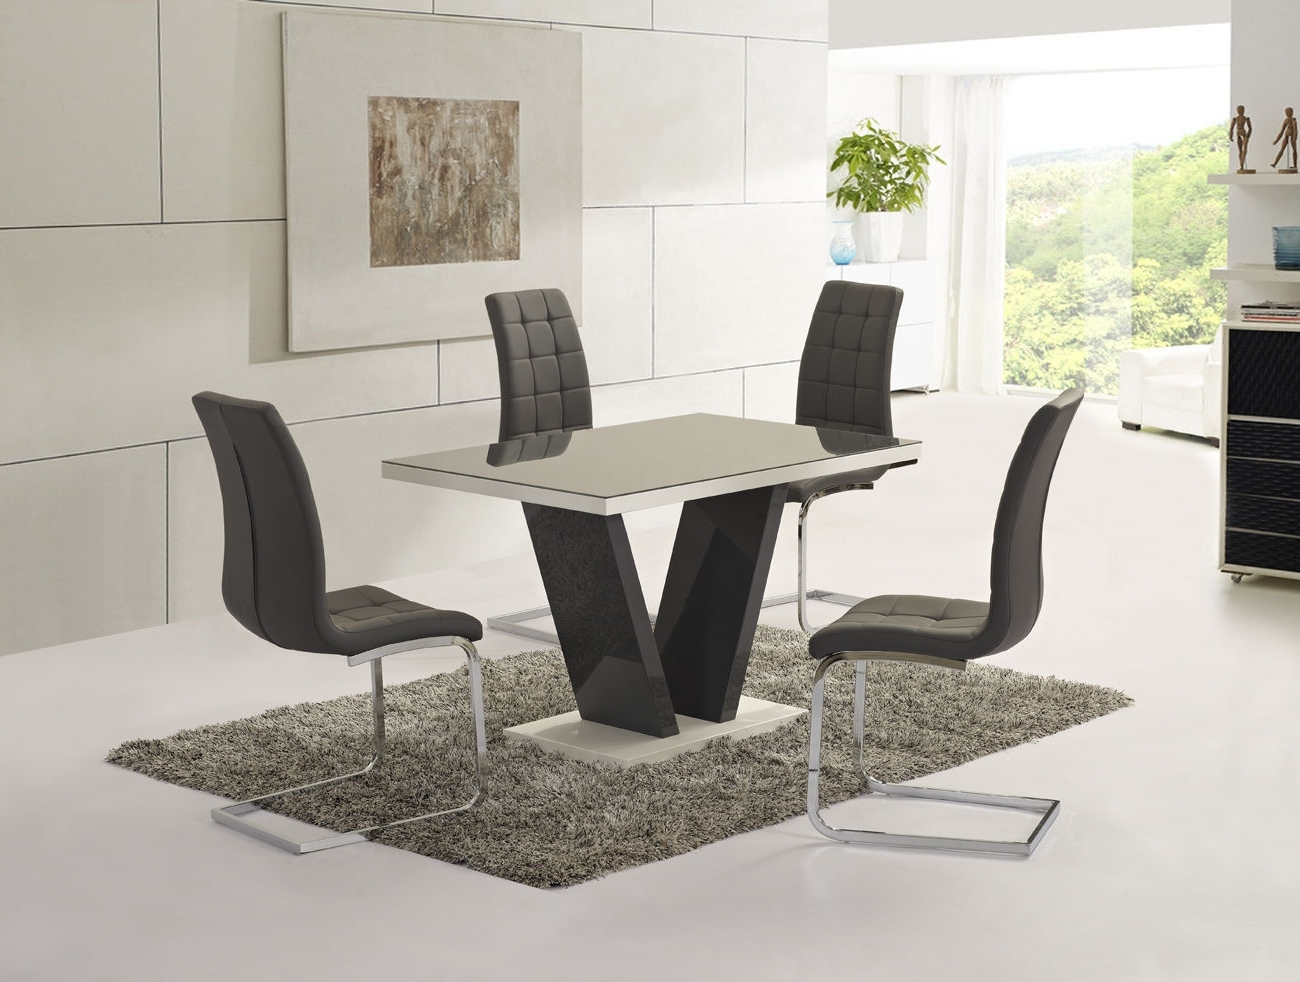 Popular Dining Tables Grey Chairs With Regard To Agreeable Small Black Gloss Dining Table Chairs High Harveys Grey (View 22 of 25)